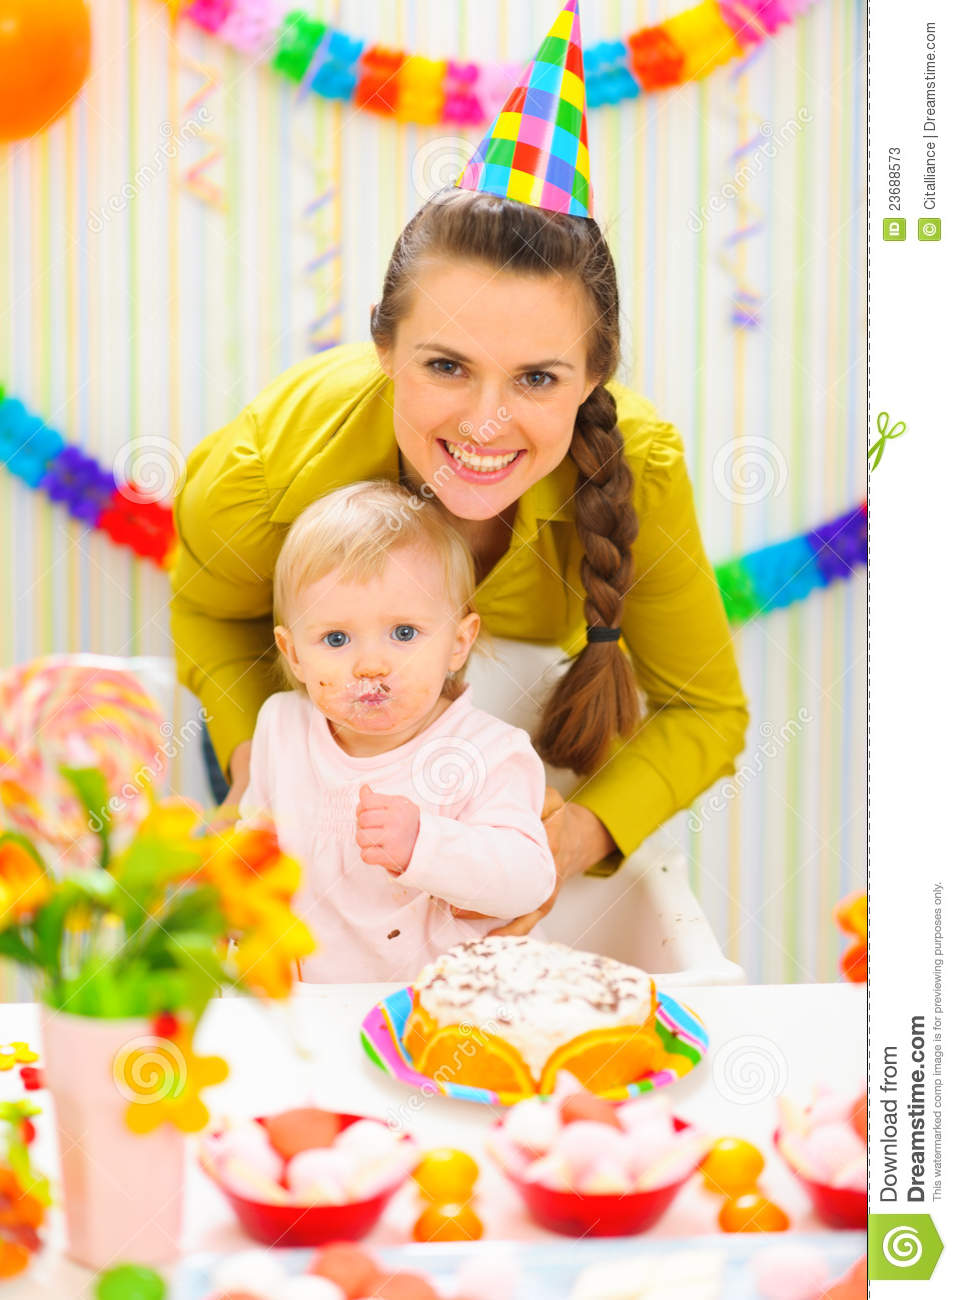 mother and baby on birthday celebration party stock image image of